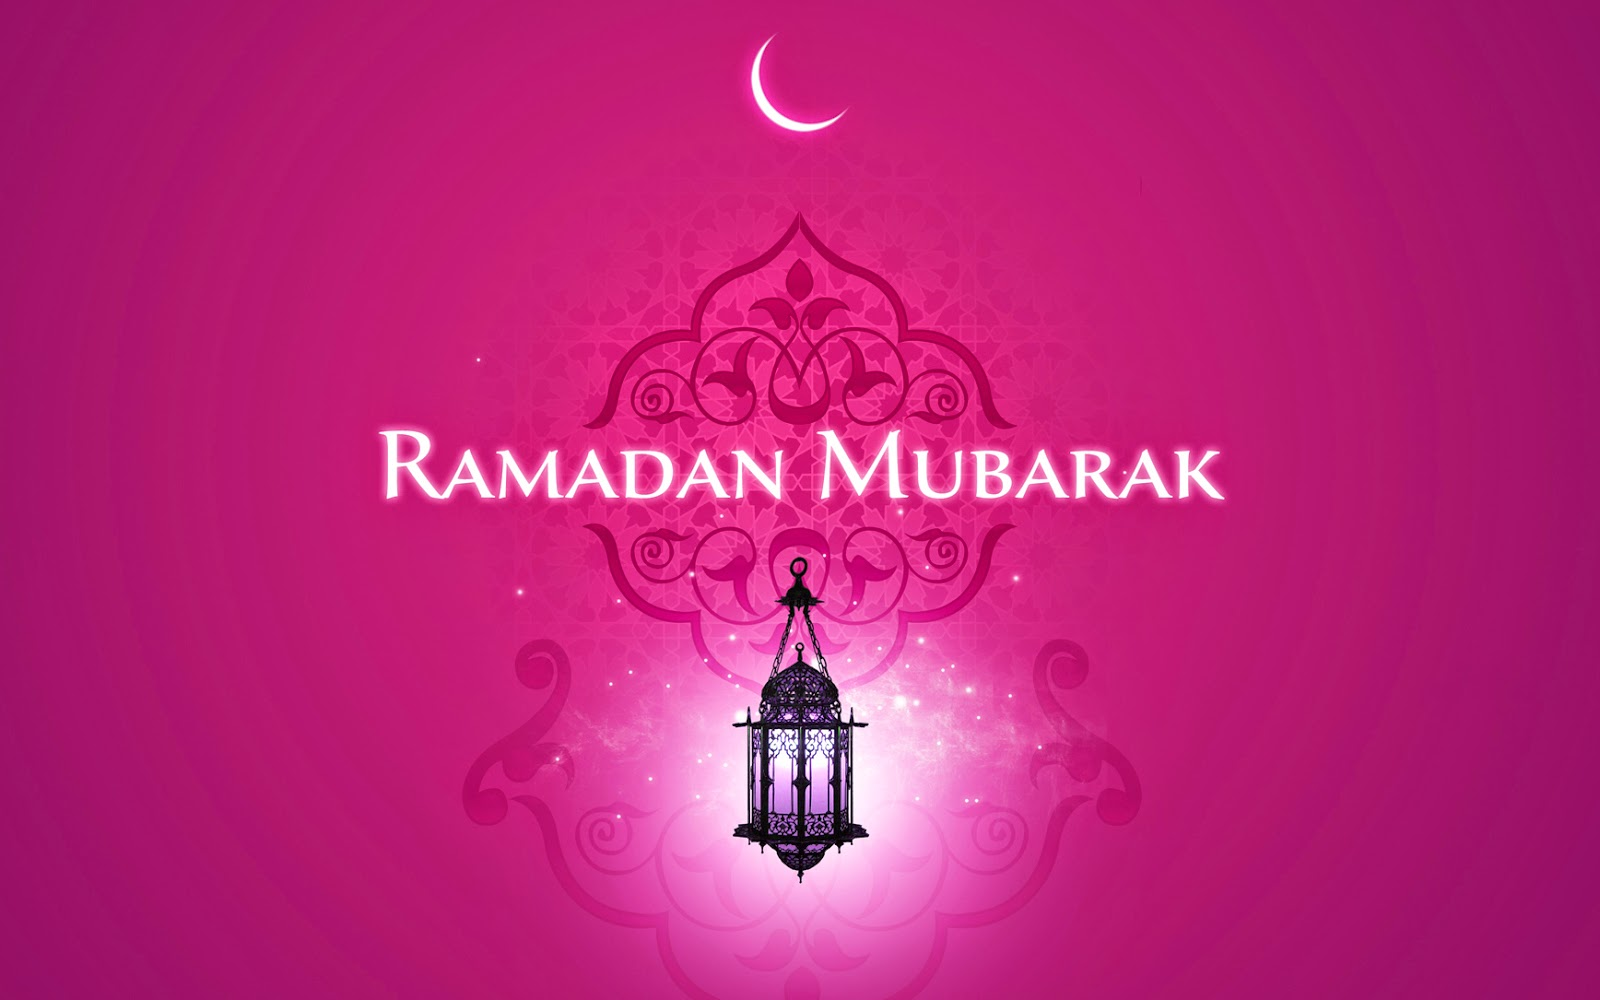 Ramadan Mubarak Wallpaper Hd